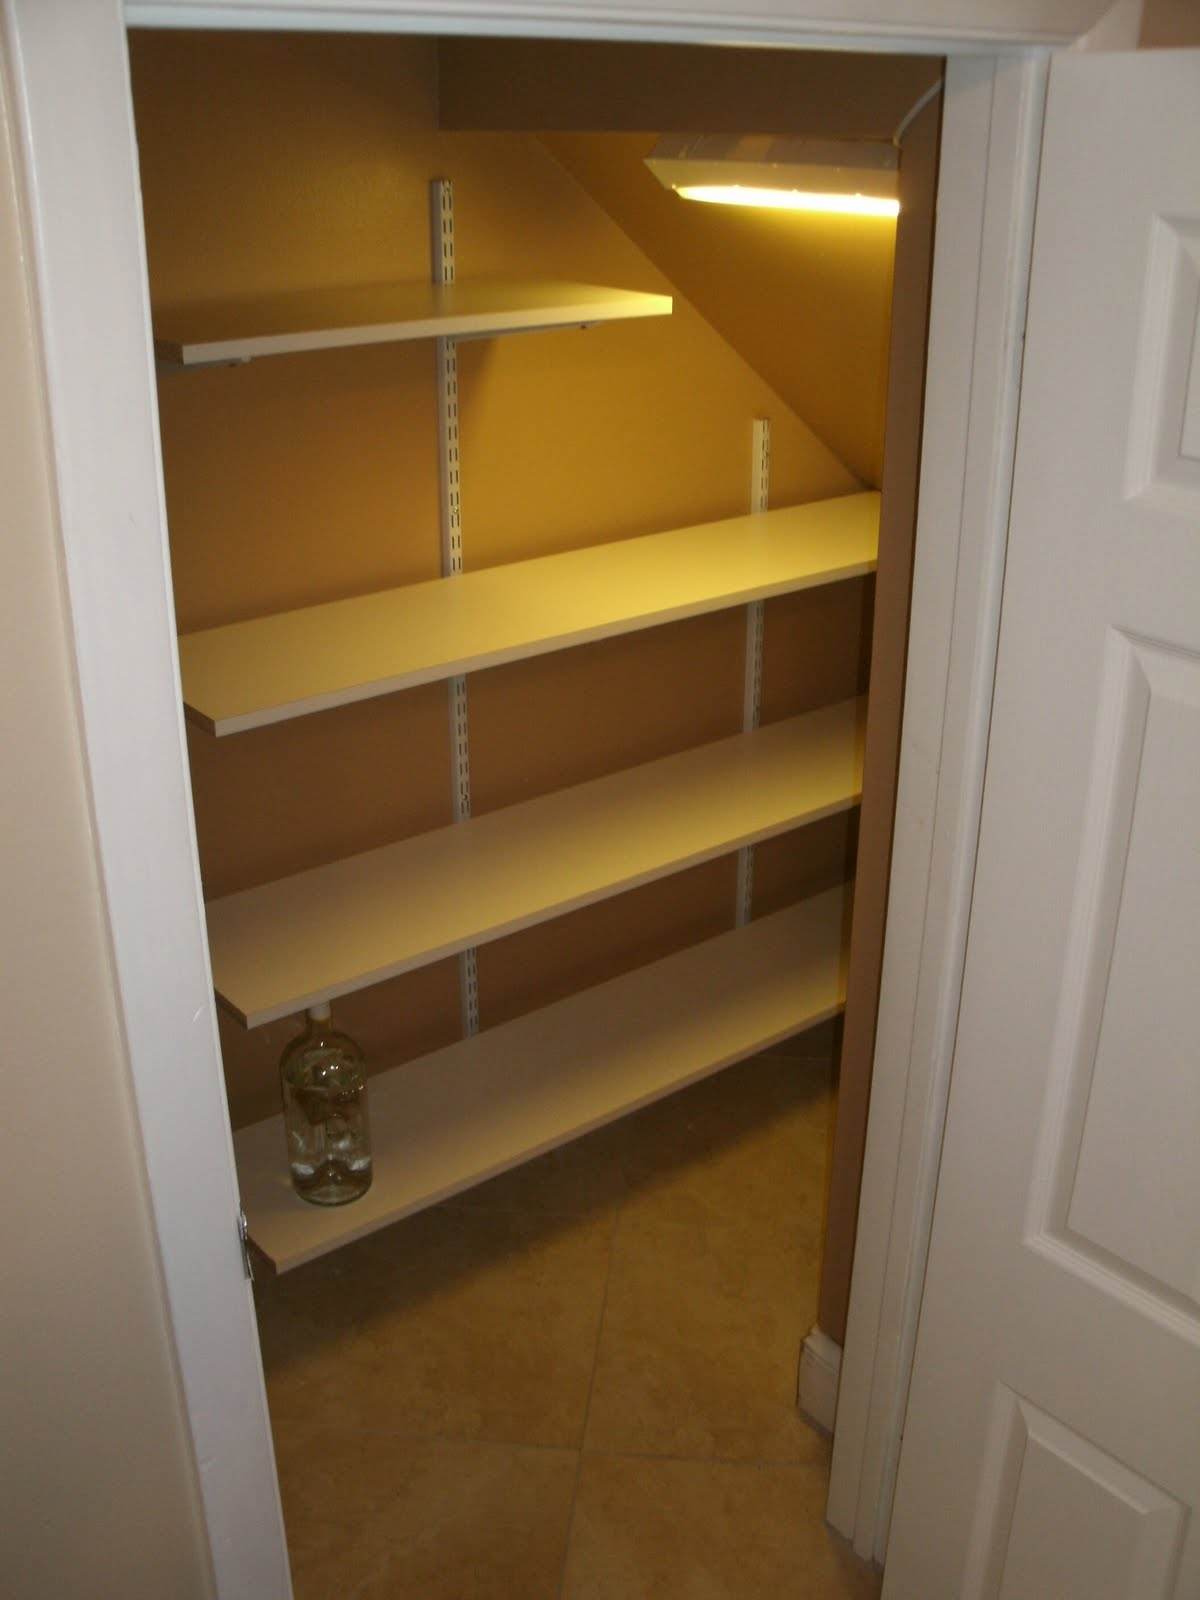 Stairs Shelving Shelves For Closet Under Stairs Roselawnlutheran